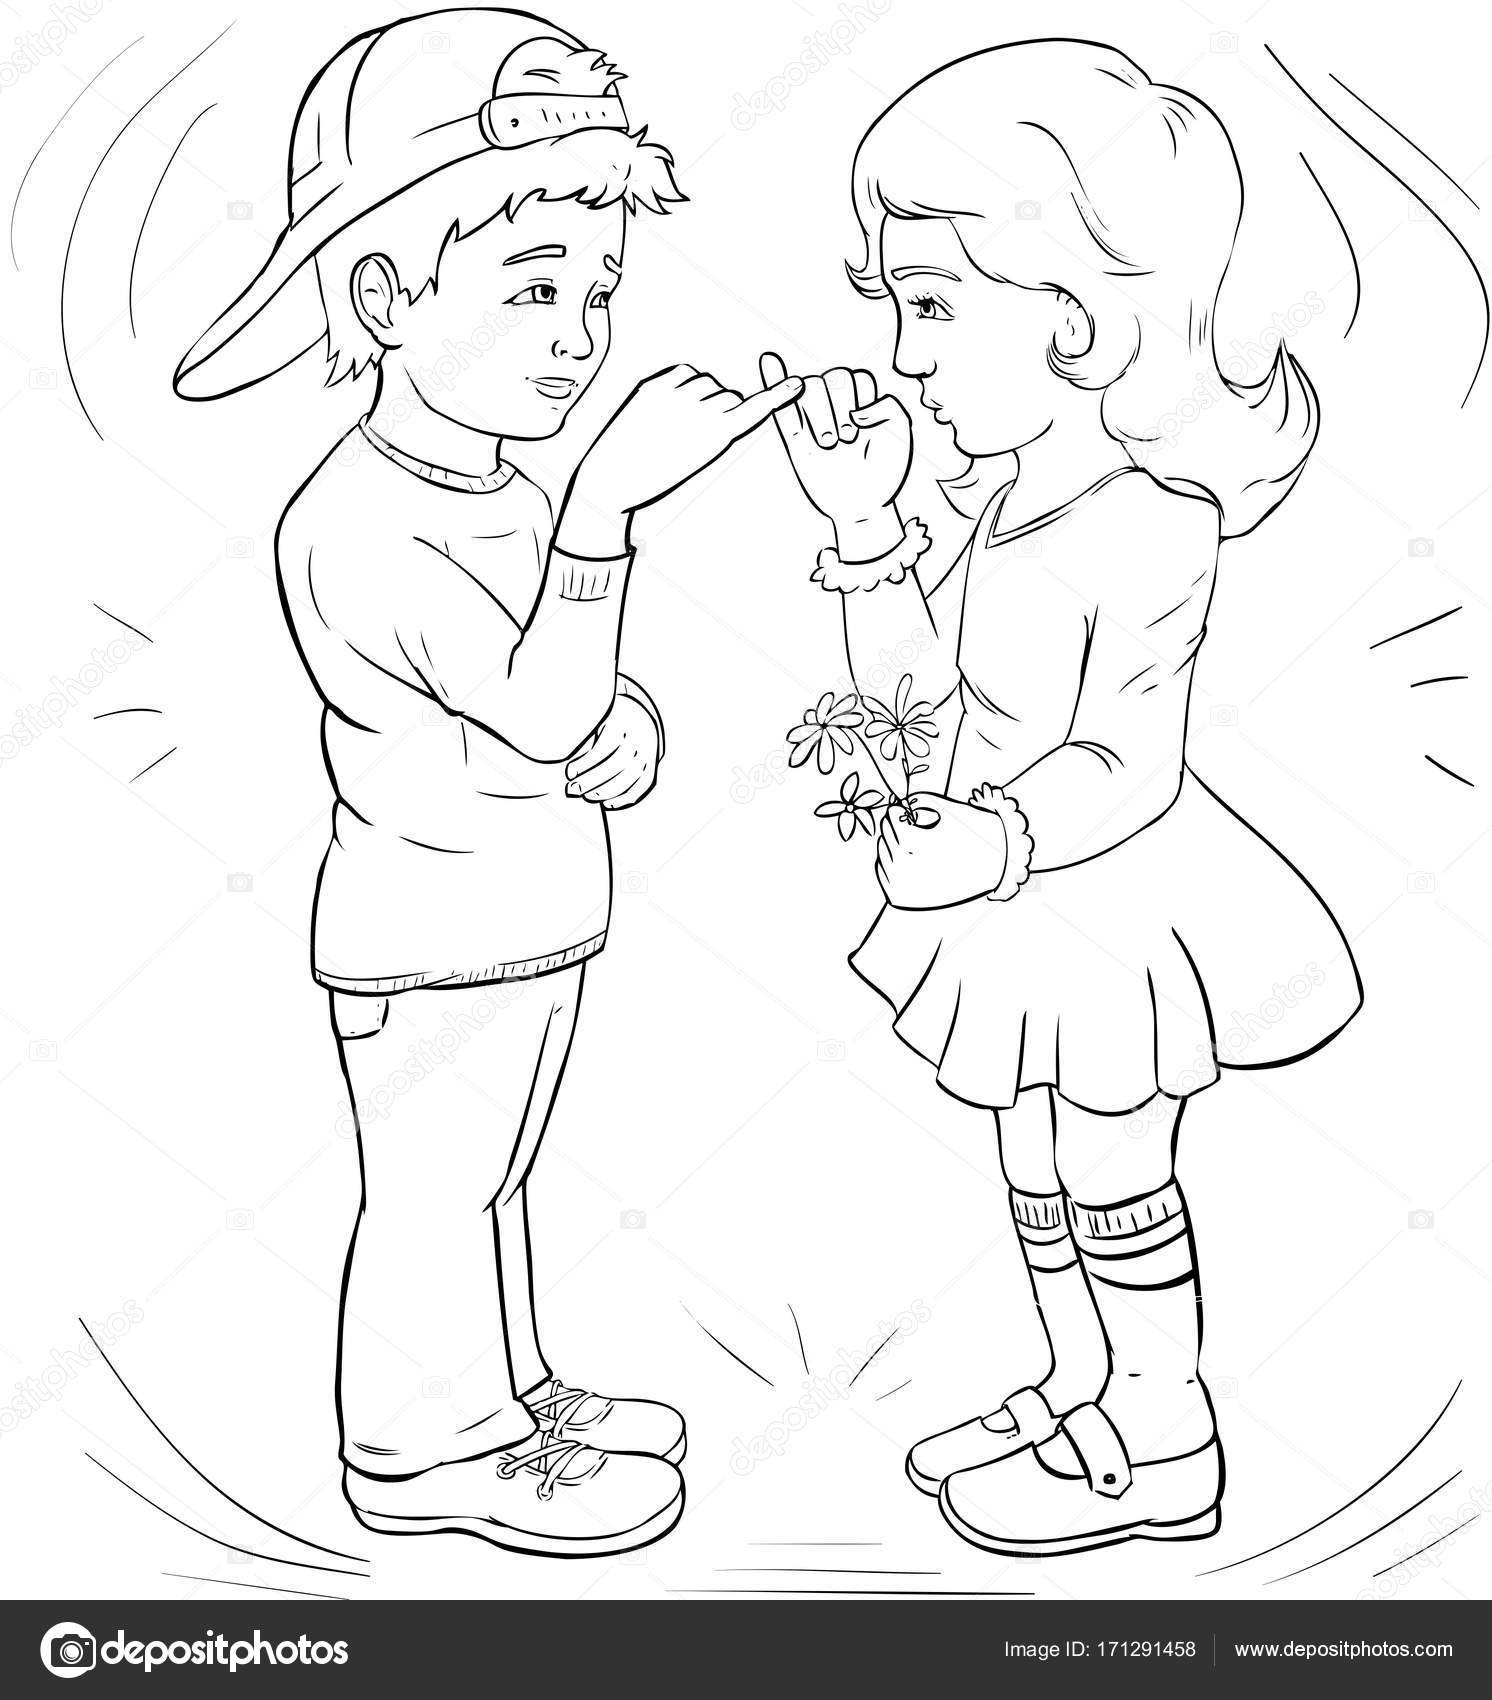 Boy and girl make friends make friends line art coloring page illustration for children photo by